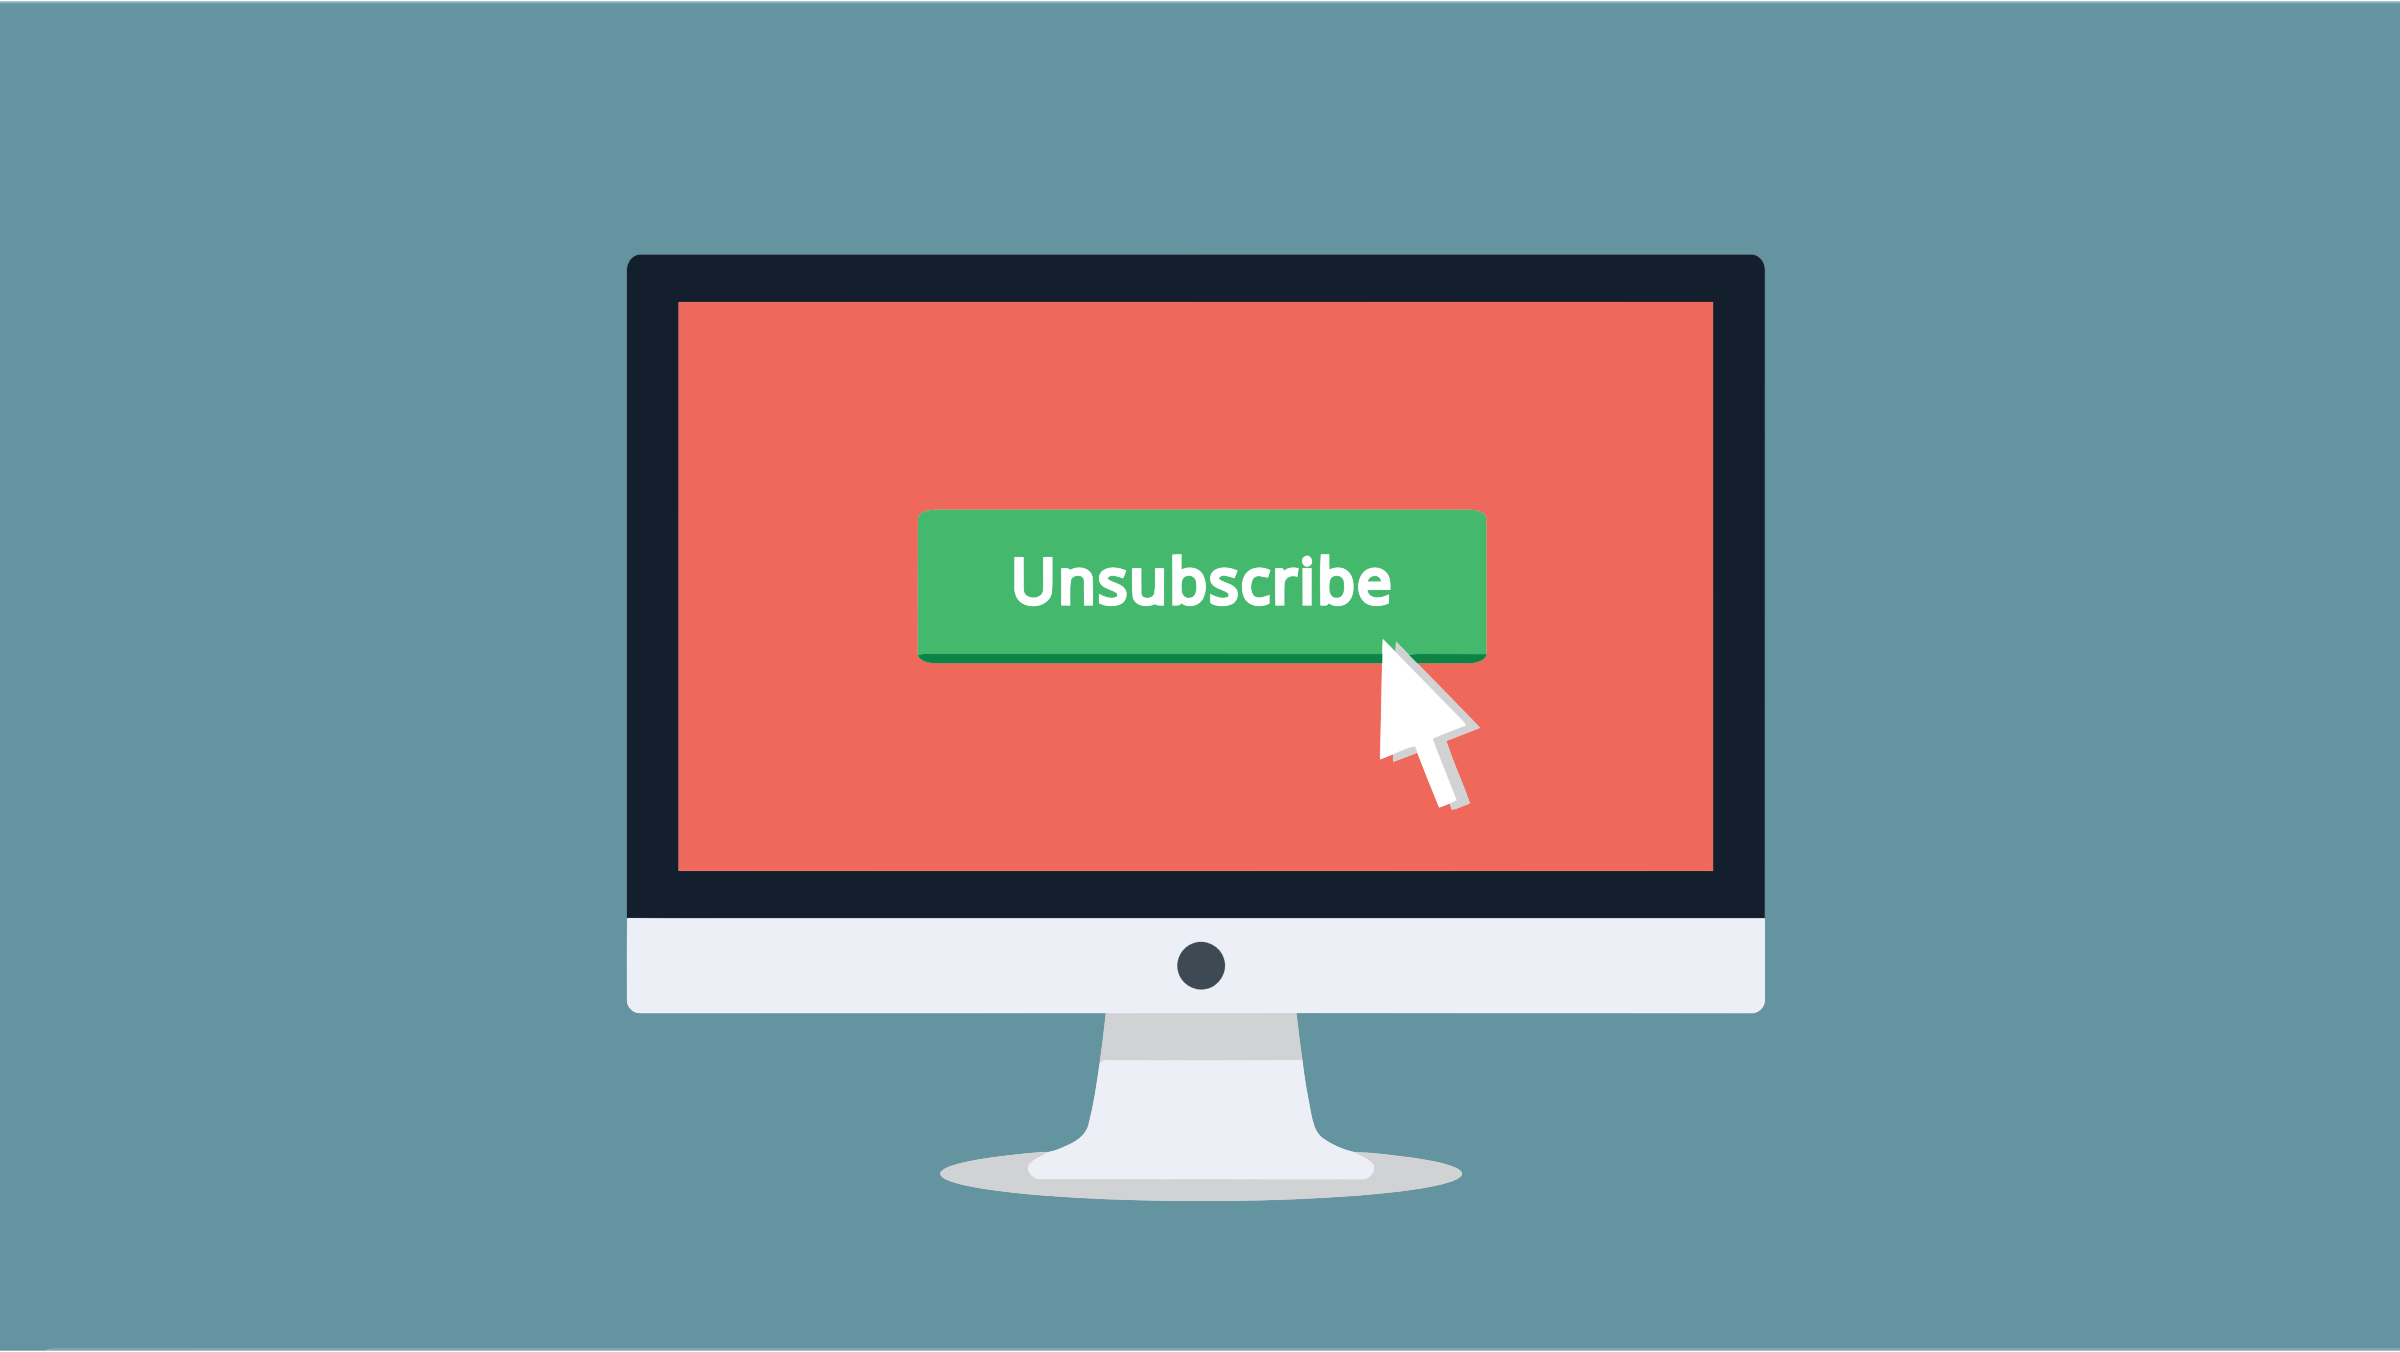 Unsubscribe Monitor by GDJ